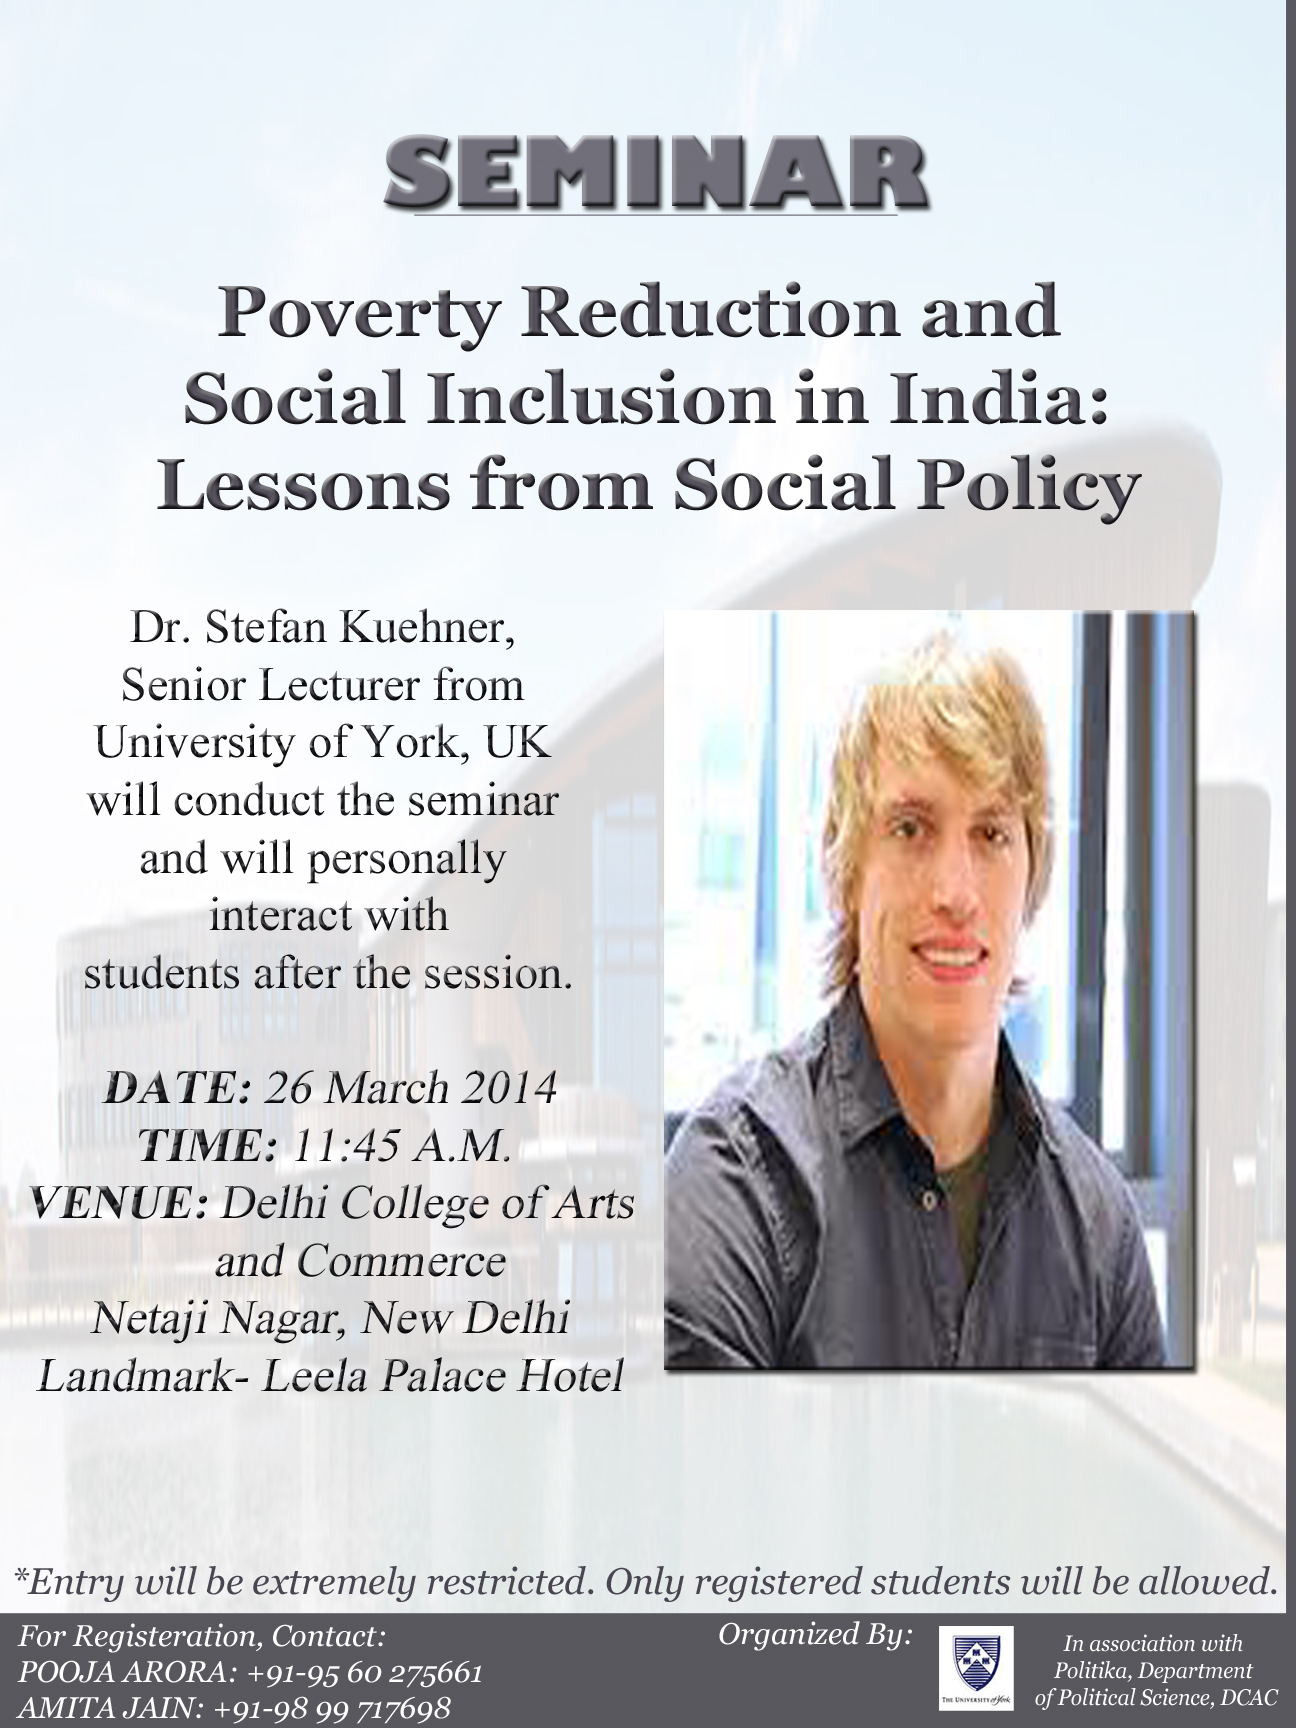 Seminar: Poverty Reduction and Social Inclusion in India: Lessons from Social Policy